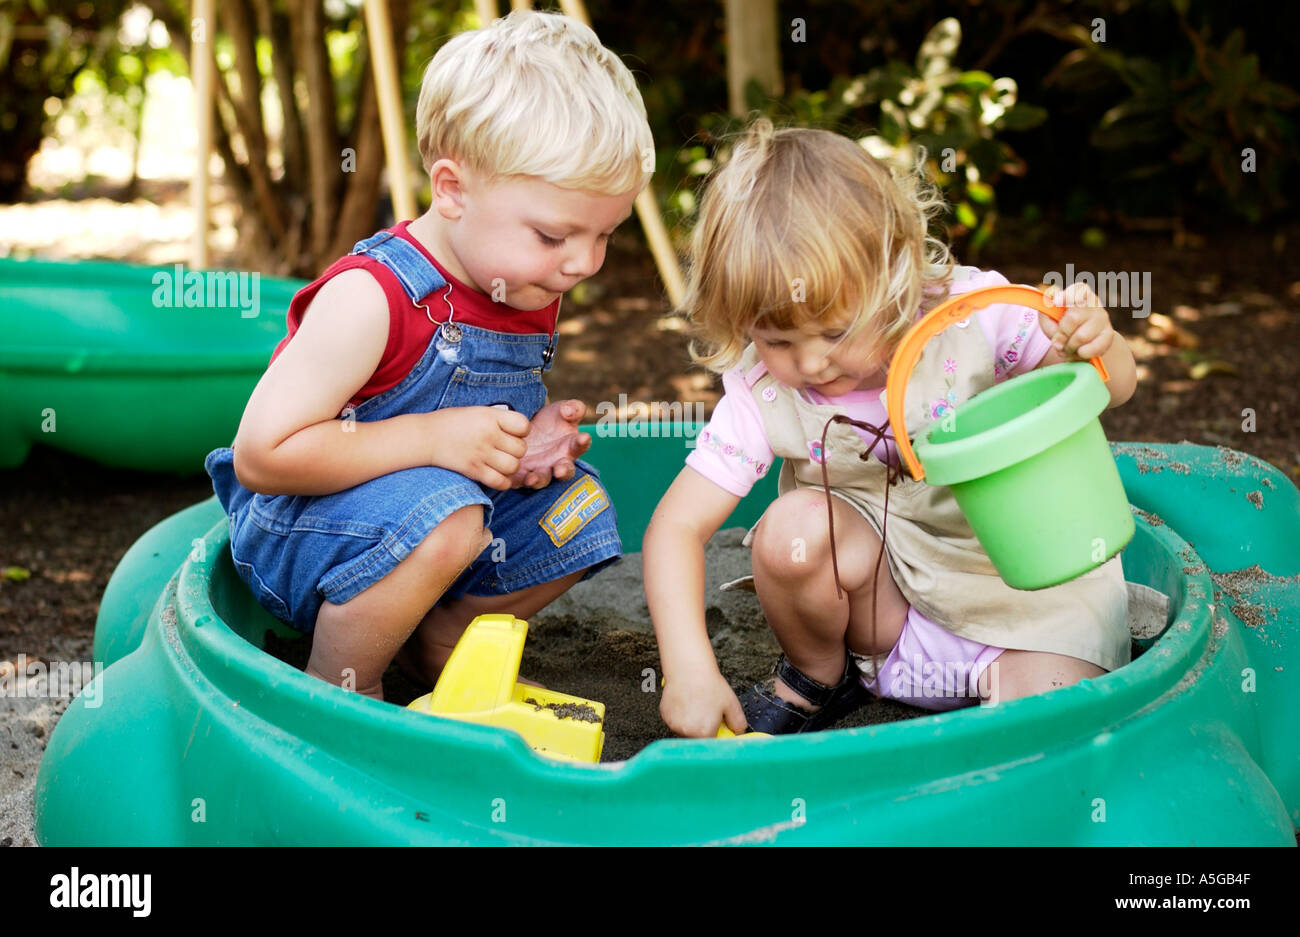 Two year old boy and girl playing together in sandbox - Stock Image